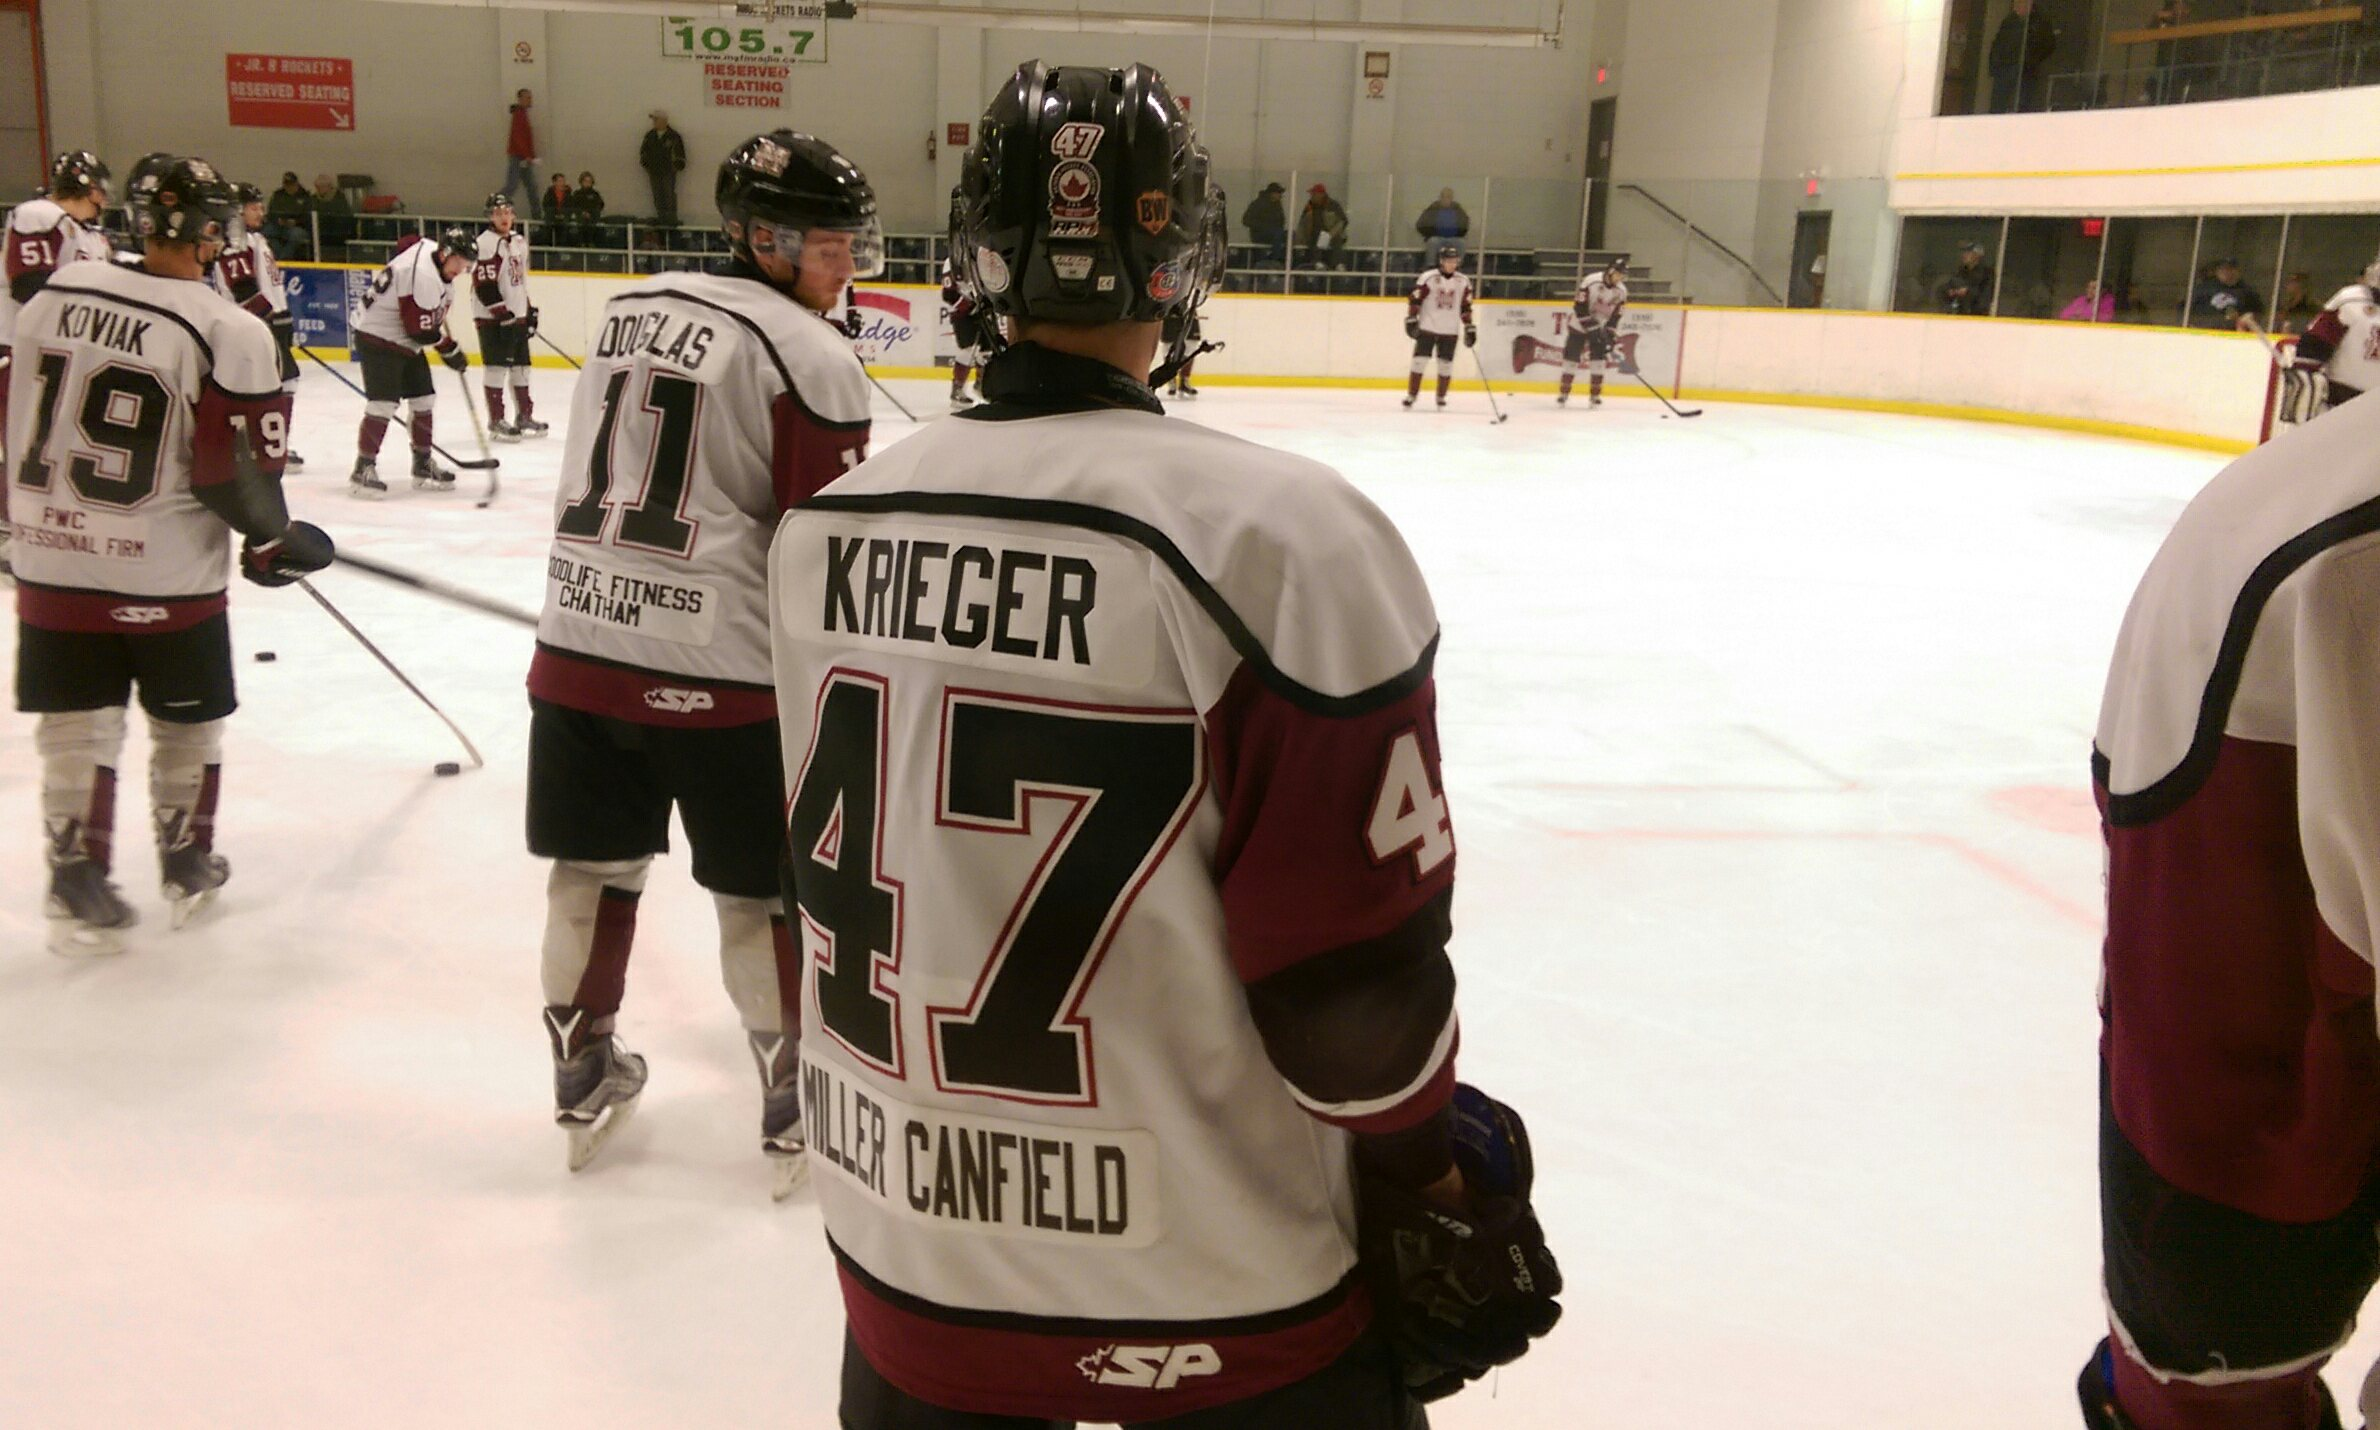 The Chatham Maroons' Ross Krieger warms up before a game against the Strathroy Rockets, December 19, 2015. (Photo by Matt Weverink)